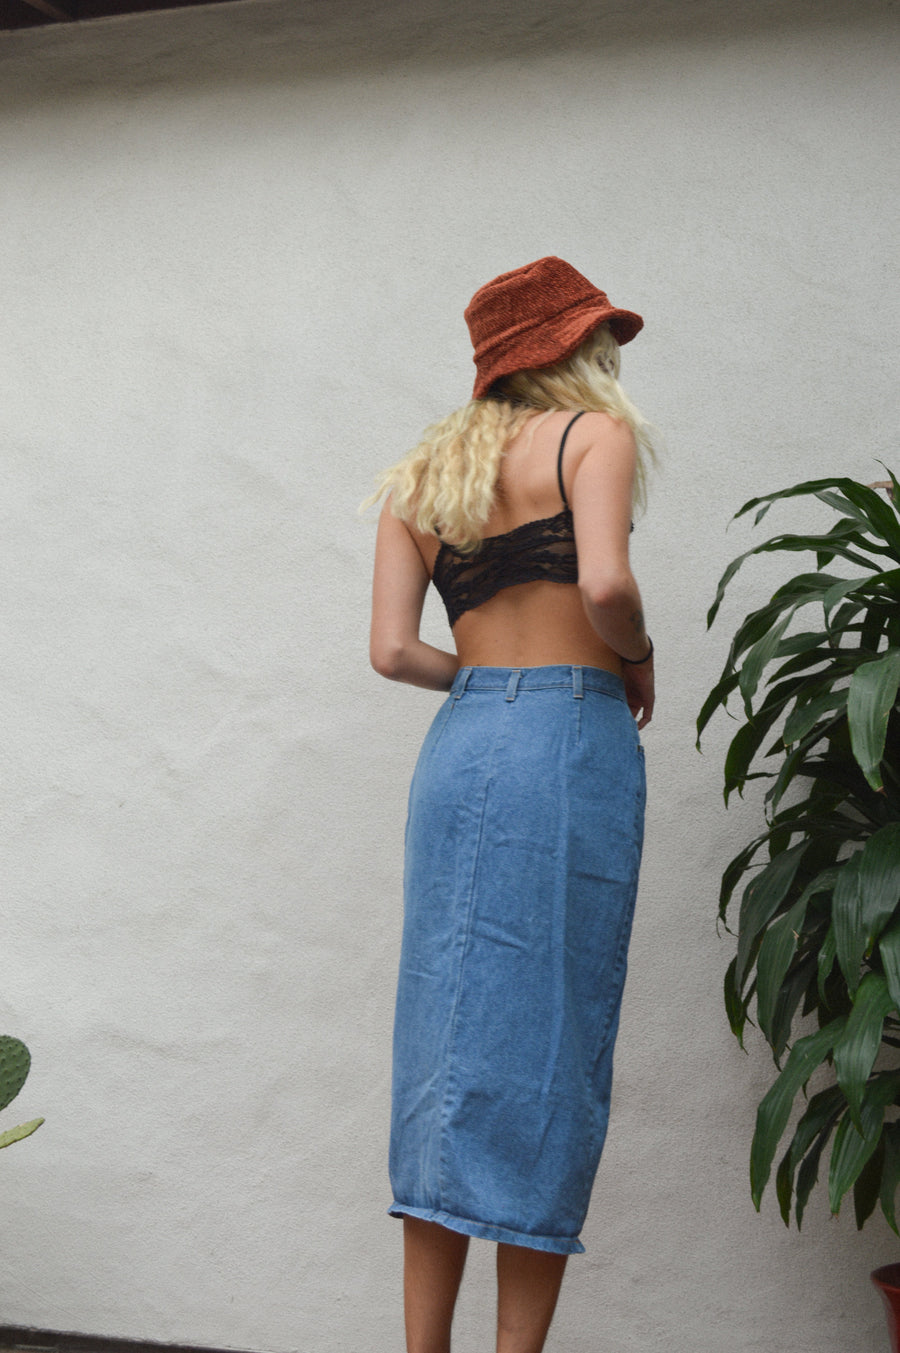 Classic Denim Midi Skirt || Aesthetic Clothing, Boho Clothing, 70s Clothing, Retro Clothing, Denim Skirt, High-Waisted Skirt, Boho Skirt